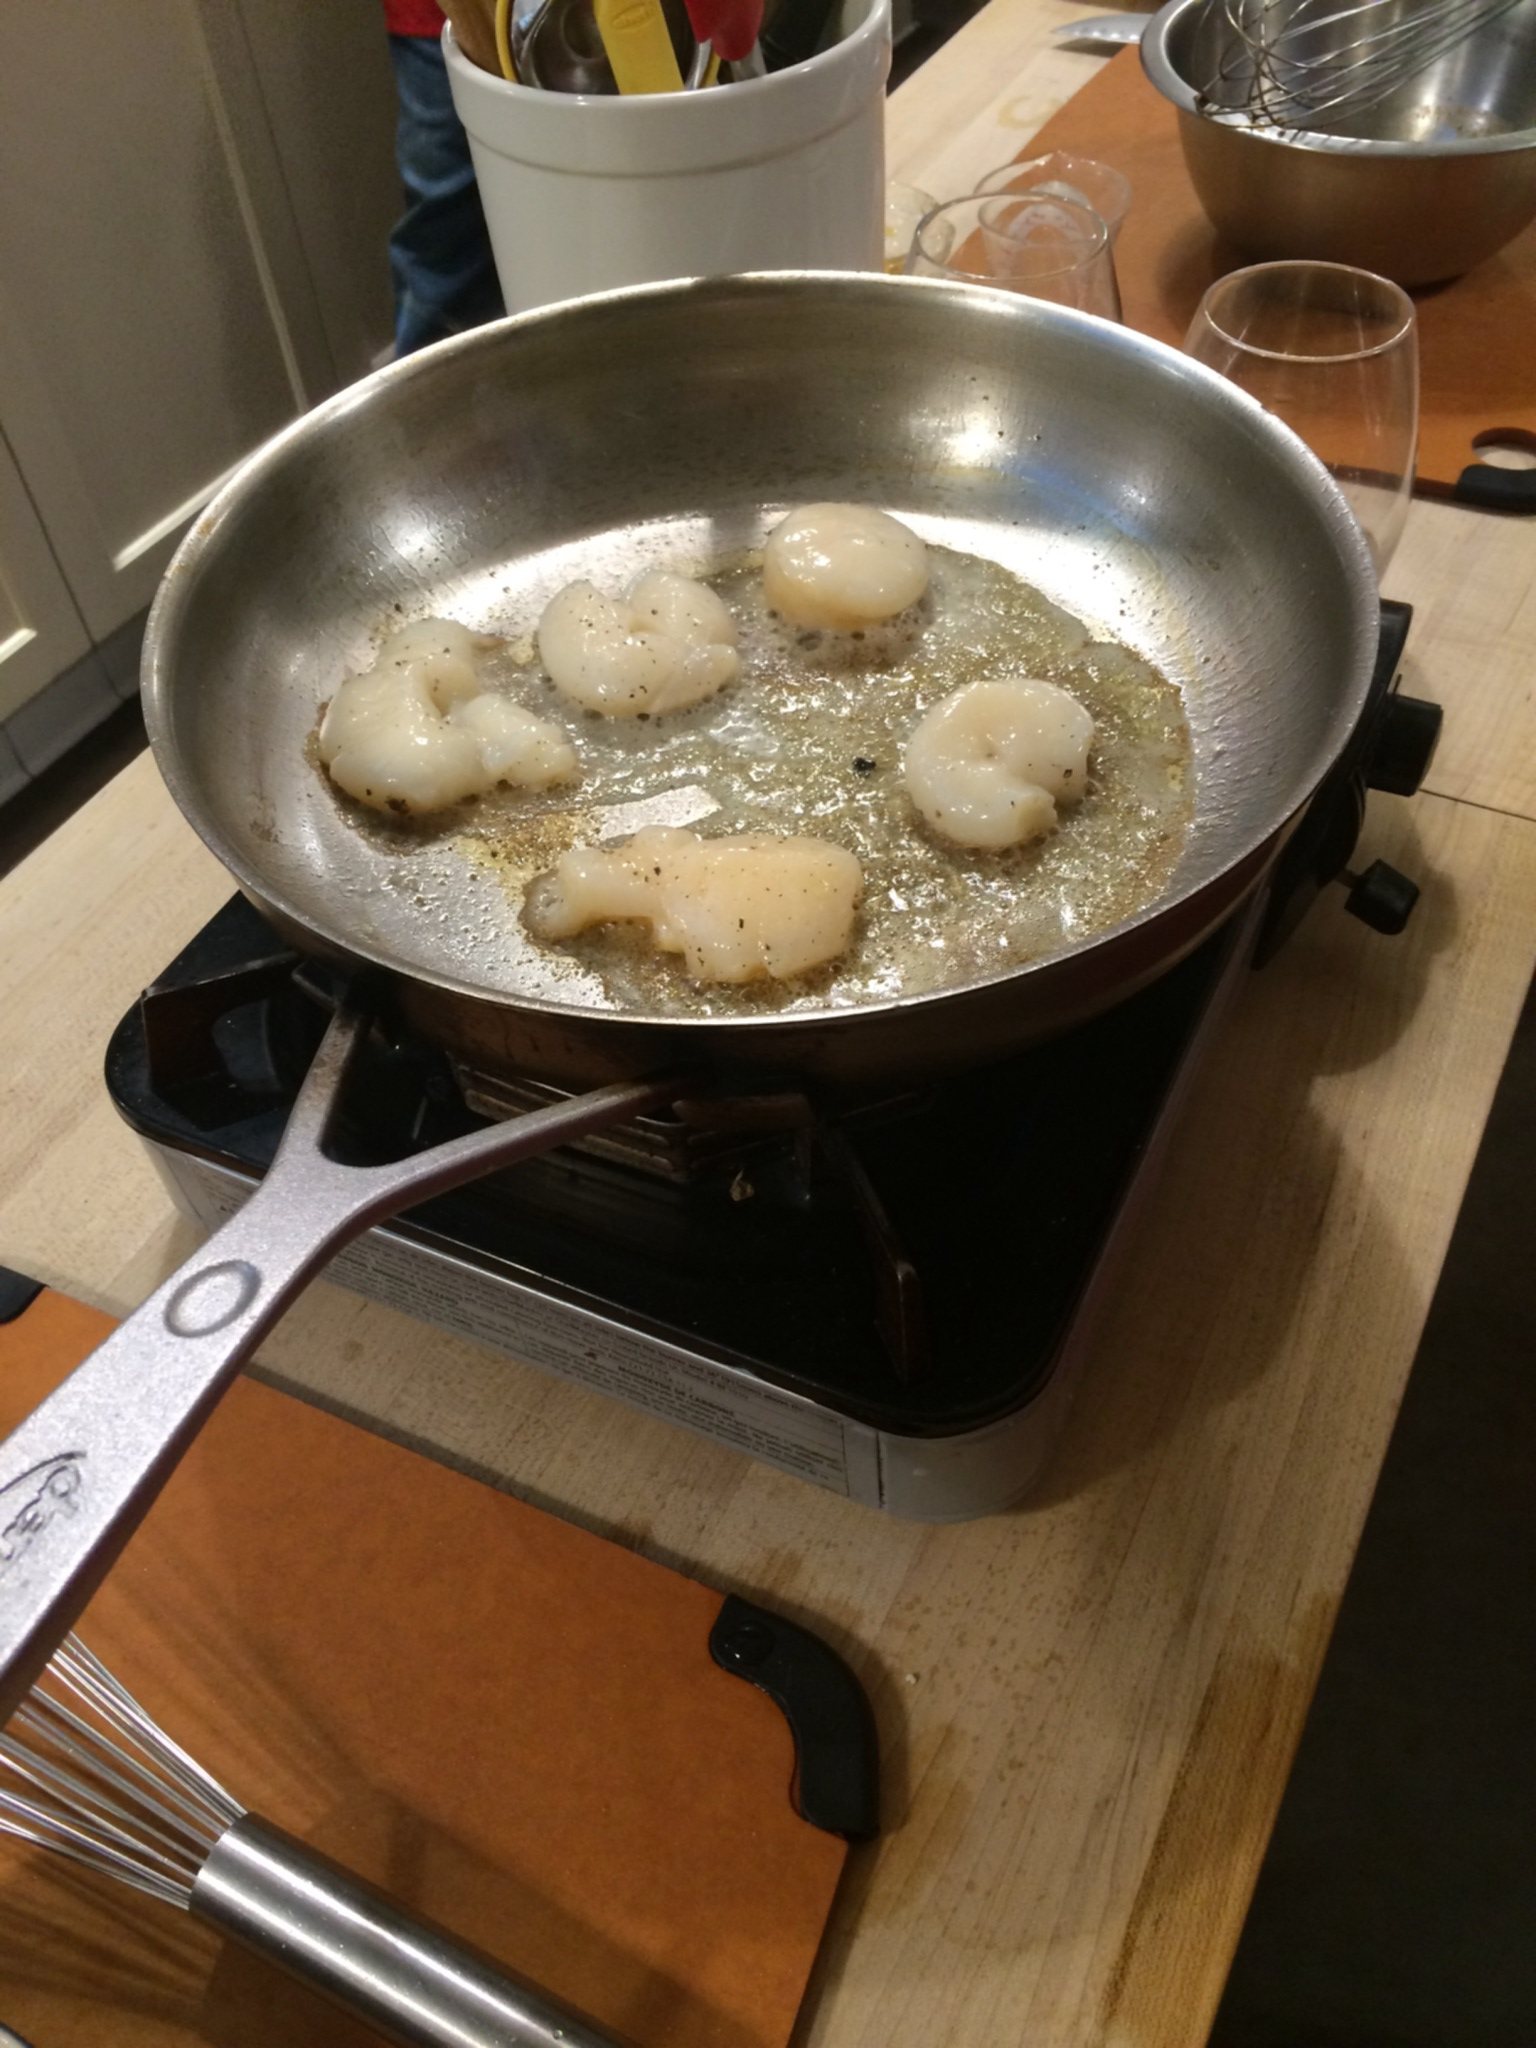 You have to remove the membranes before you cook. Sometimes that makes for a not so round scallop.